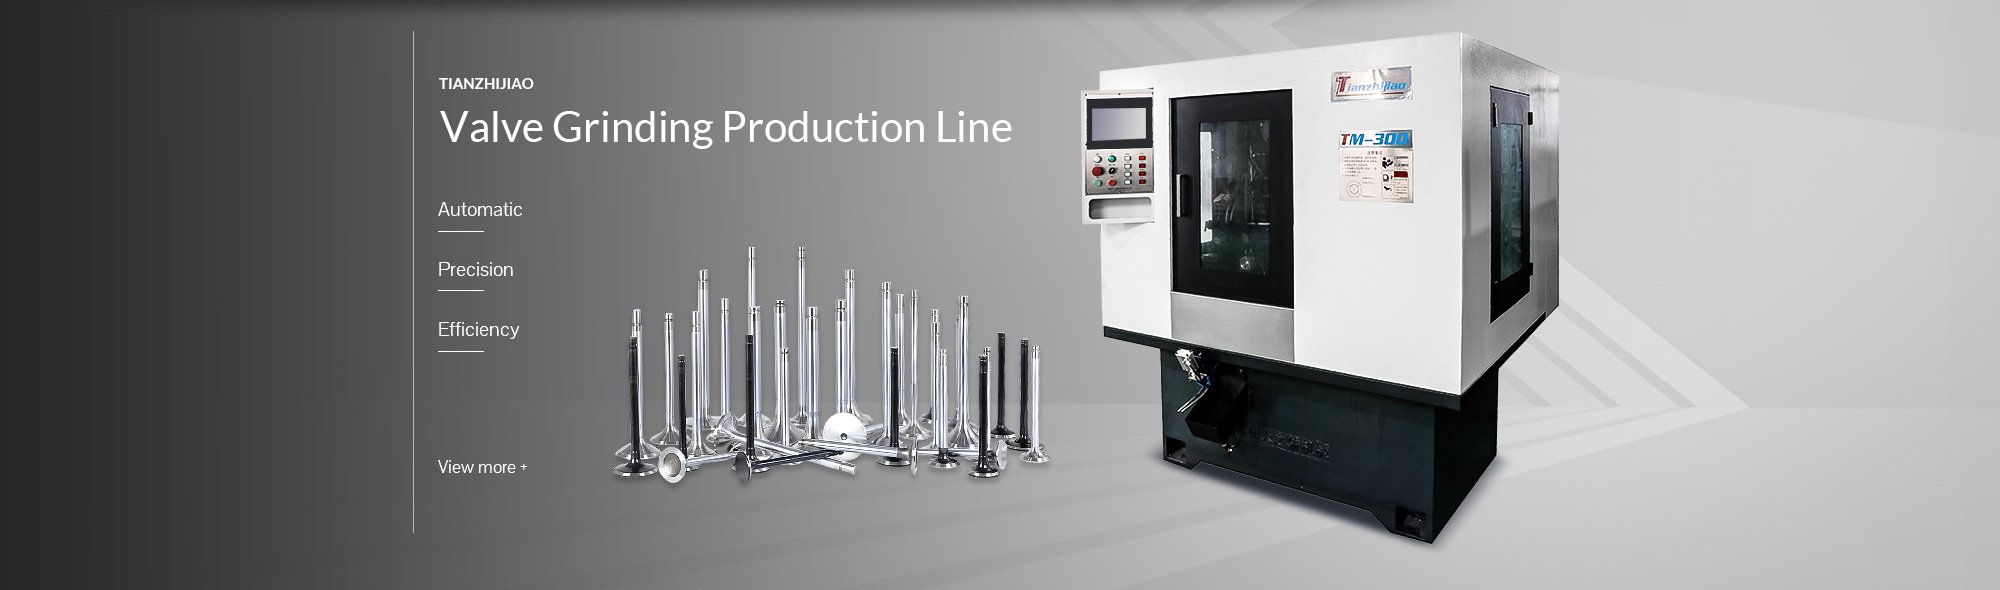 Valve Grinding Production Line